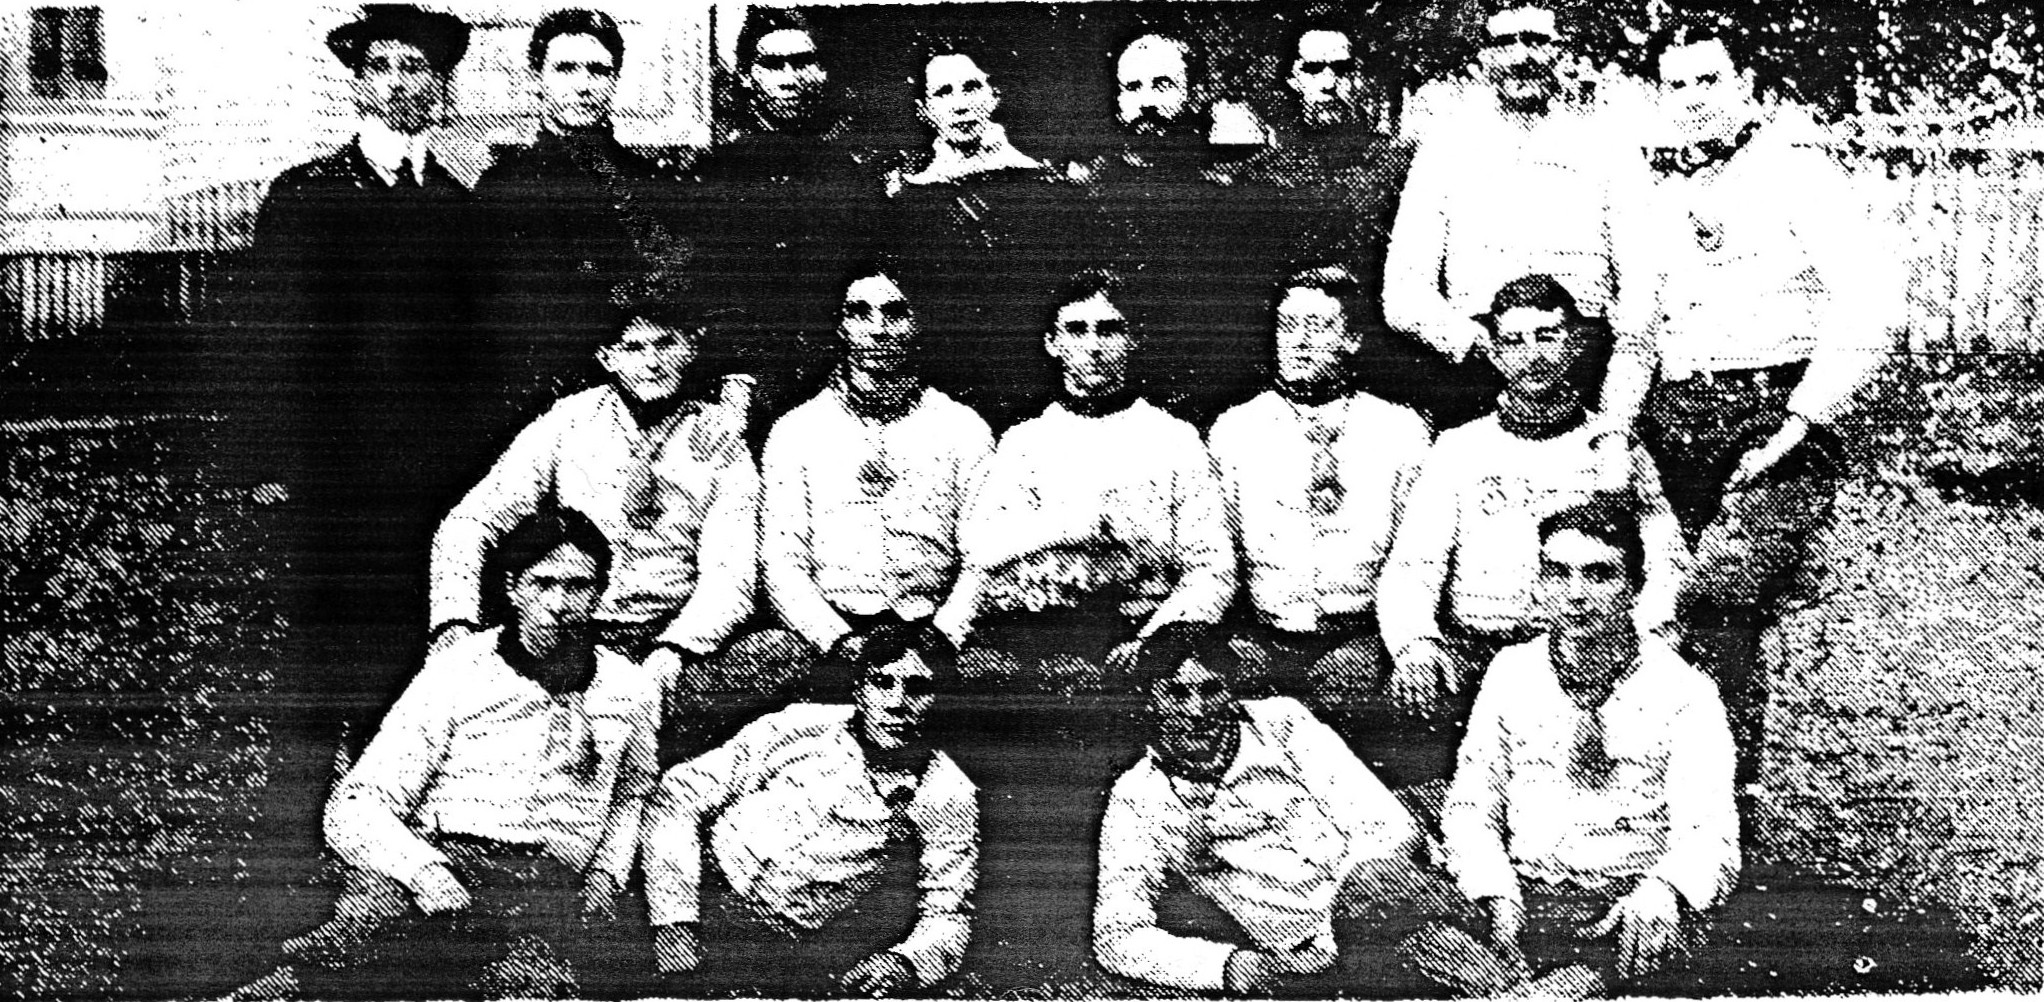 Standing at top left is L.C. Moise, believed to be Sumter's first football coach. This photo shows the 1901 Sumter Military Academy team, for which he was the manager. Others in the picture are, standing to the right of Moise, Professor Chase; W.E. Hicks; Manning; Jim George; Smith. Center row: Capers; E.P. Durant; C. Brogdon captain; Edwards. Front row: N.B. Hicks; A. Clark; T. Woods; T. Durant.